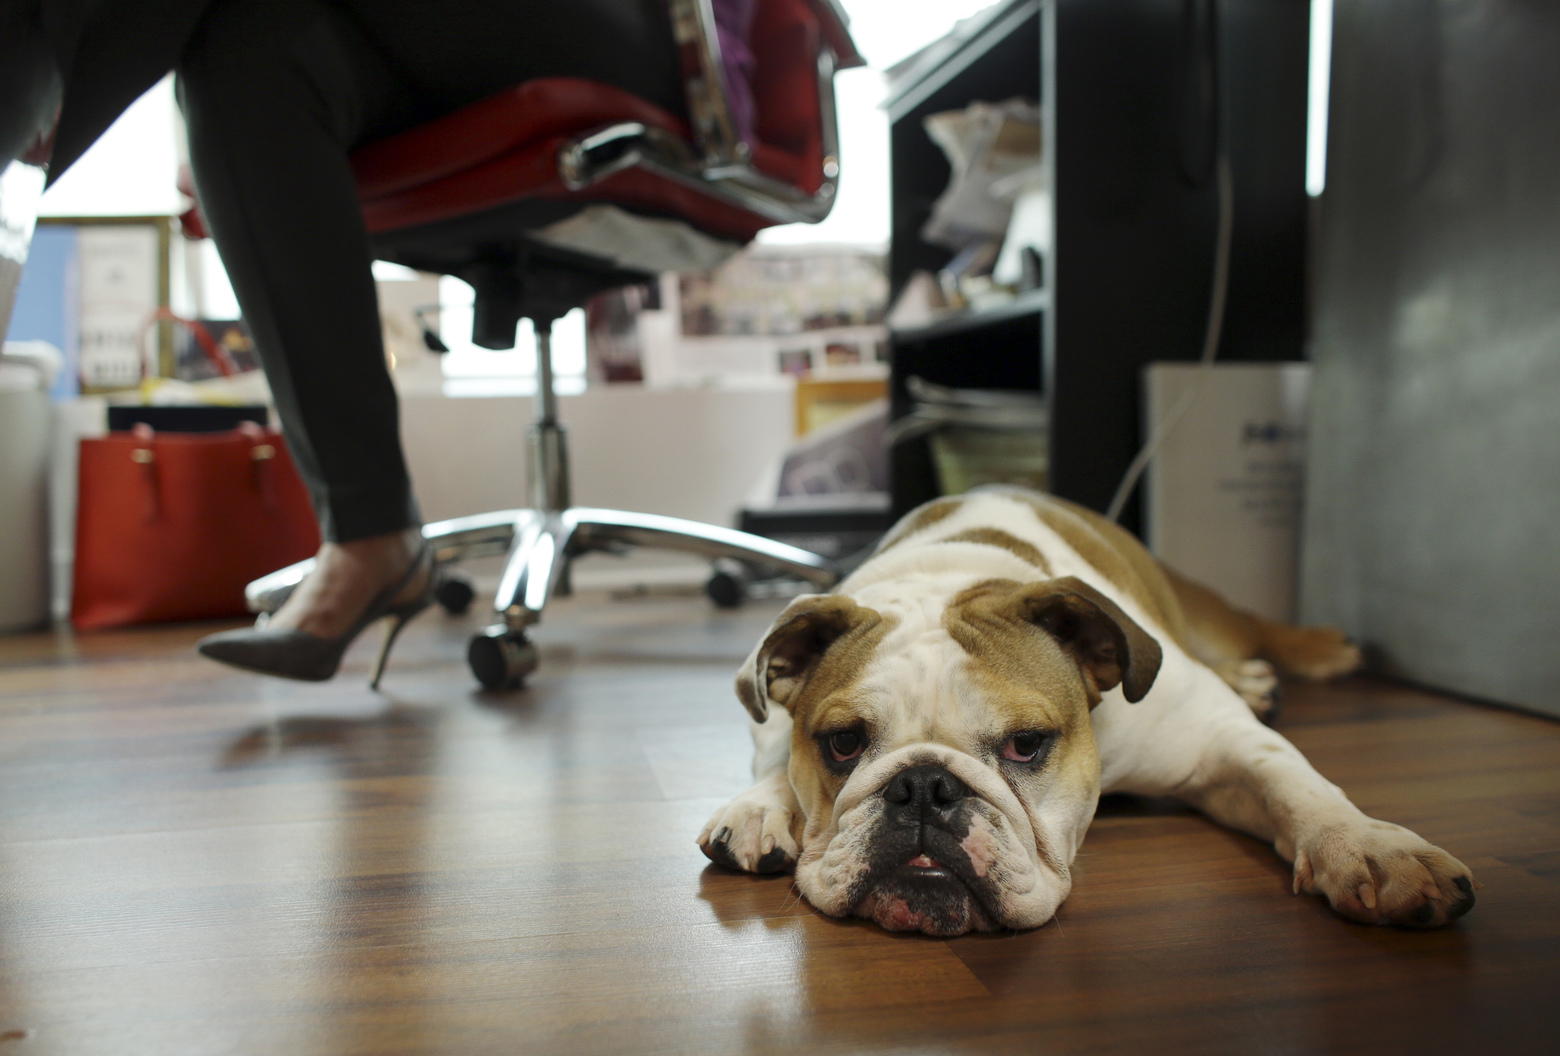 Pets At Work May Help Atmosphere But Bring Their Own